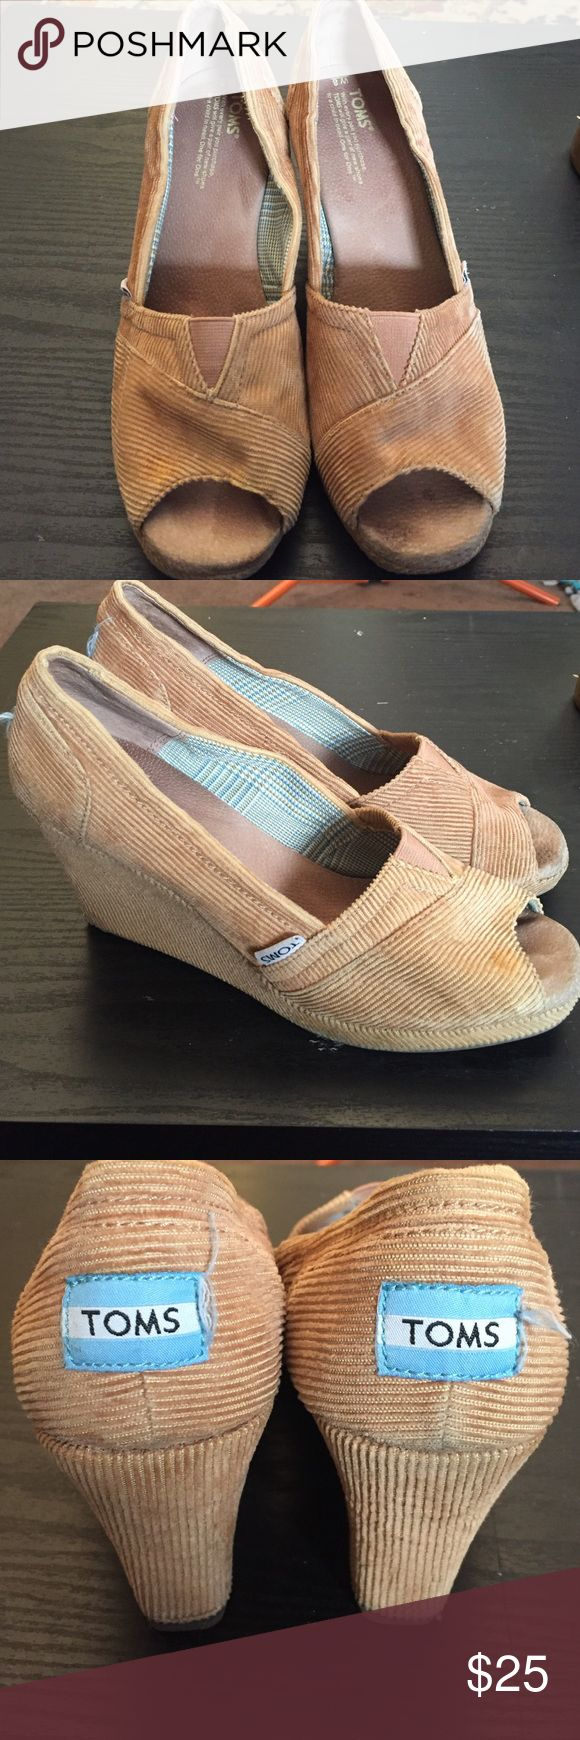 TOMS WEDGES Light brown coduroy toms wedges barely worn . Great soles inside and out. A little dirty inside where the open toed part . Feel free to ask any questions before making offers/purchases. Orders will be shipped within 32 hours of purchase. TOMS Shoes Heels